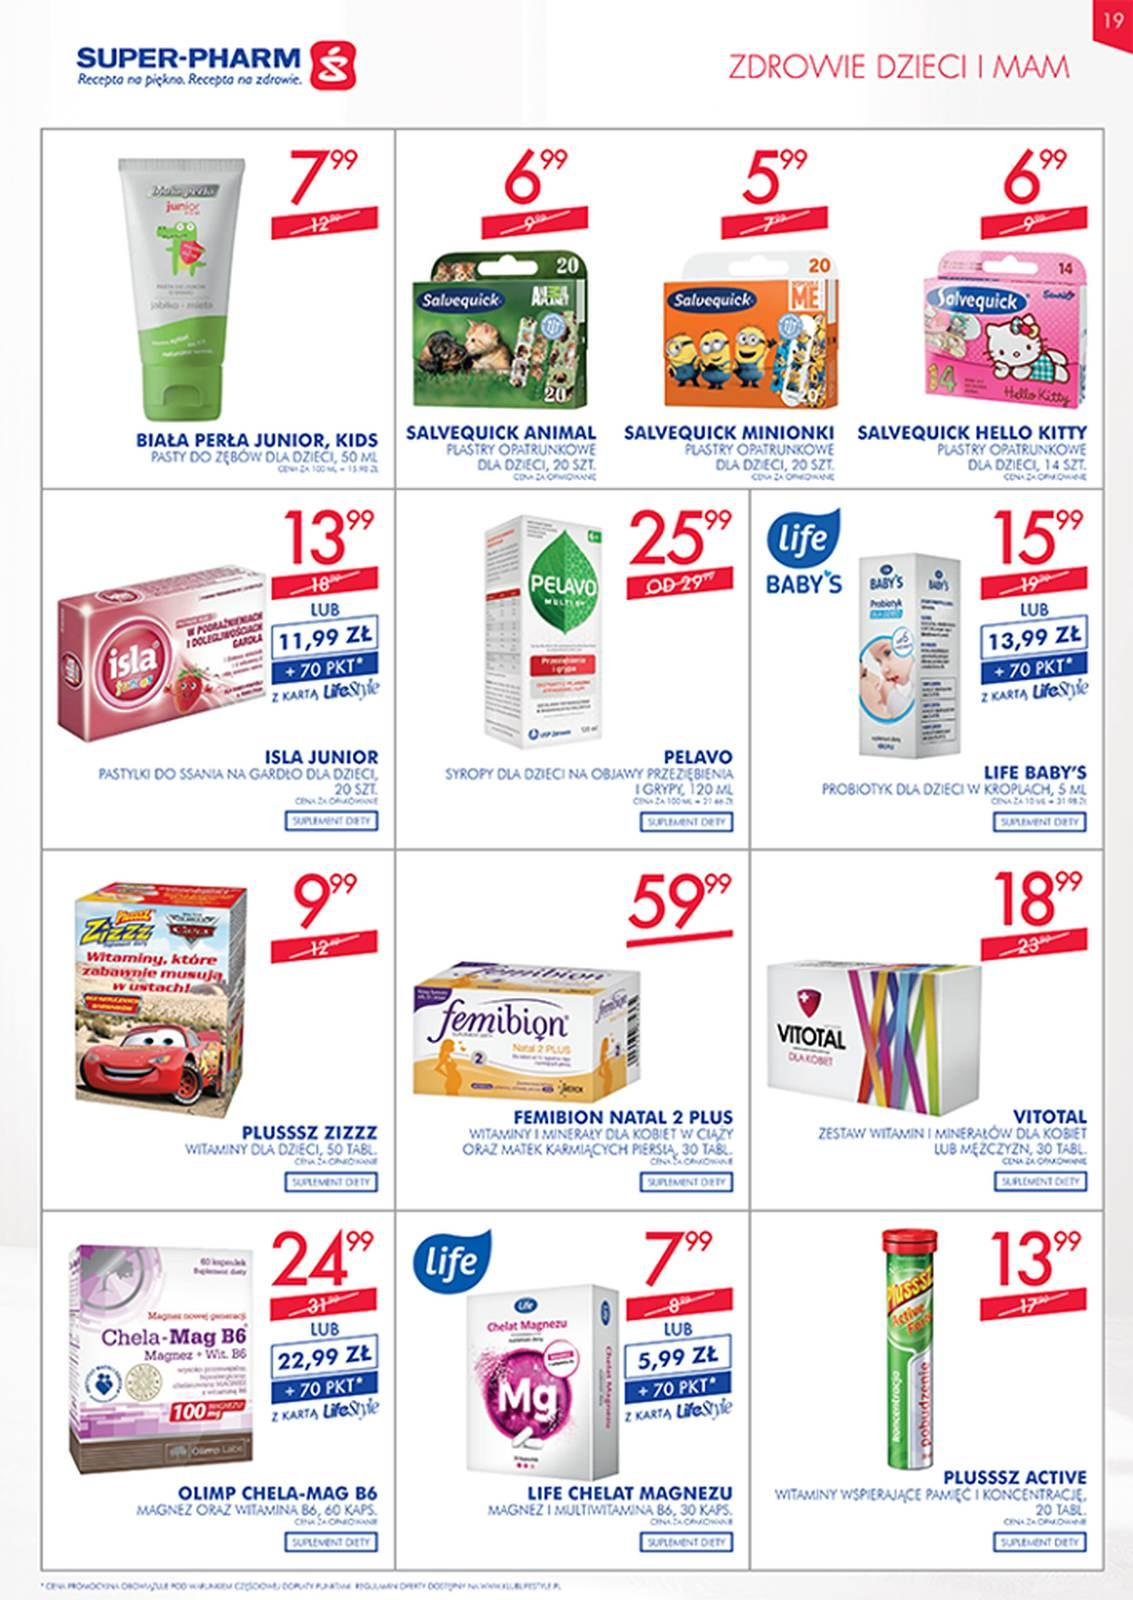 Gazetka promocyjna Superpharm do 08/05/2019 str.19